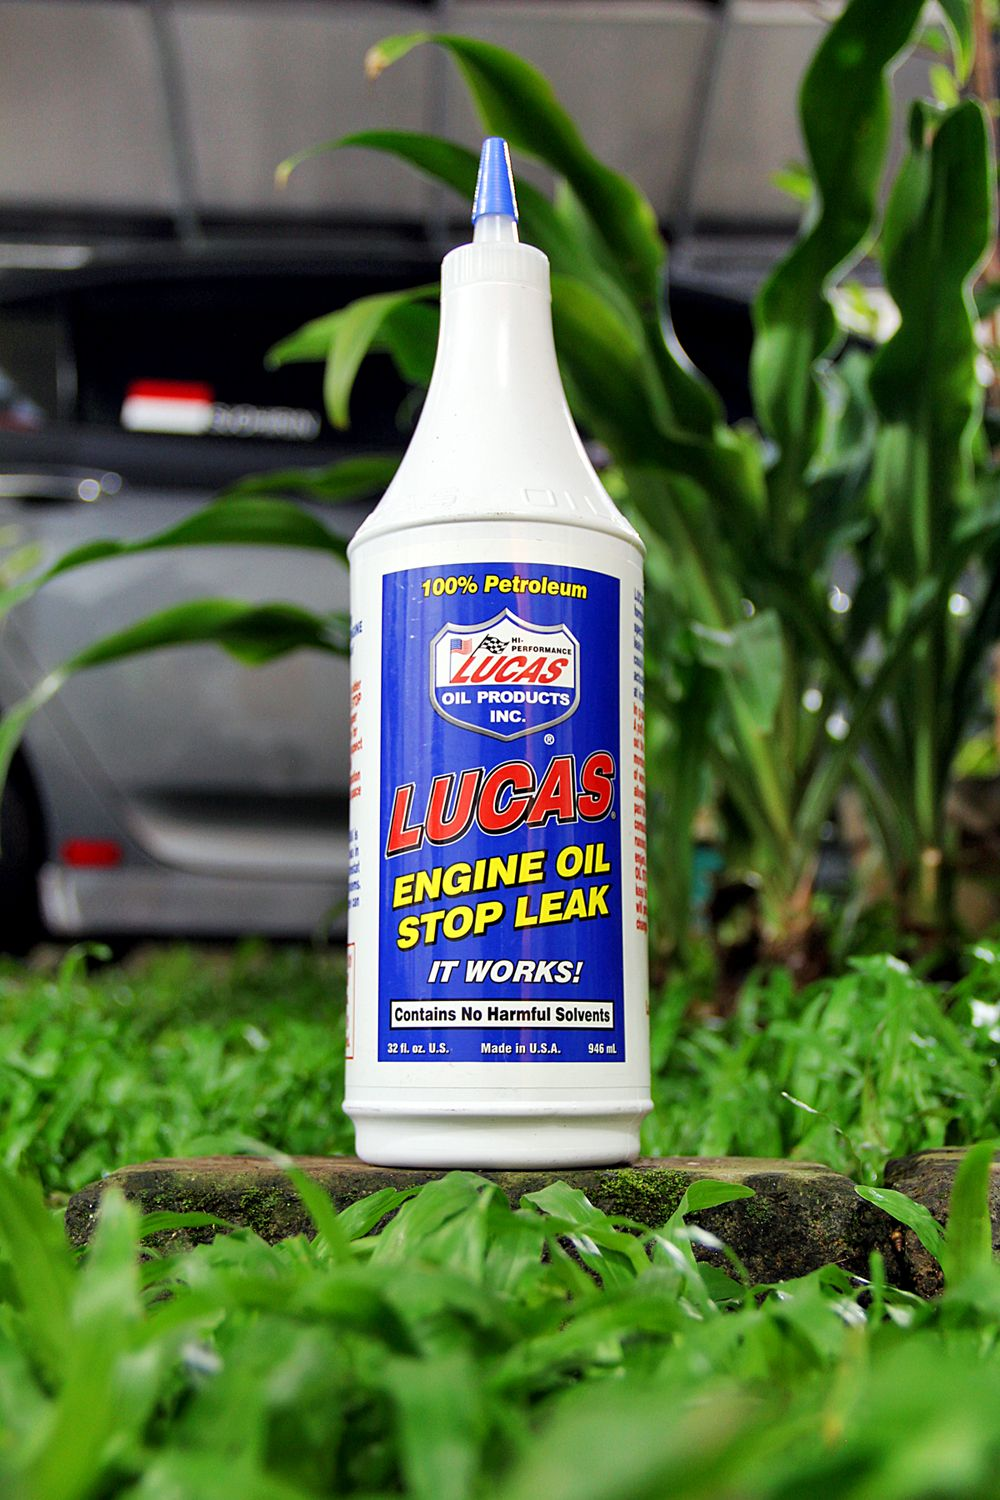 Engine Oil Stop Leak Vol: 1 liter SRP: 170,000,- Code: 10278